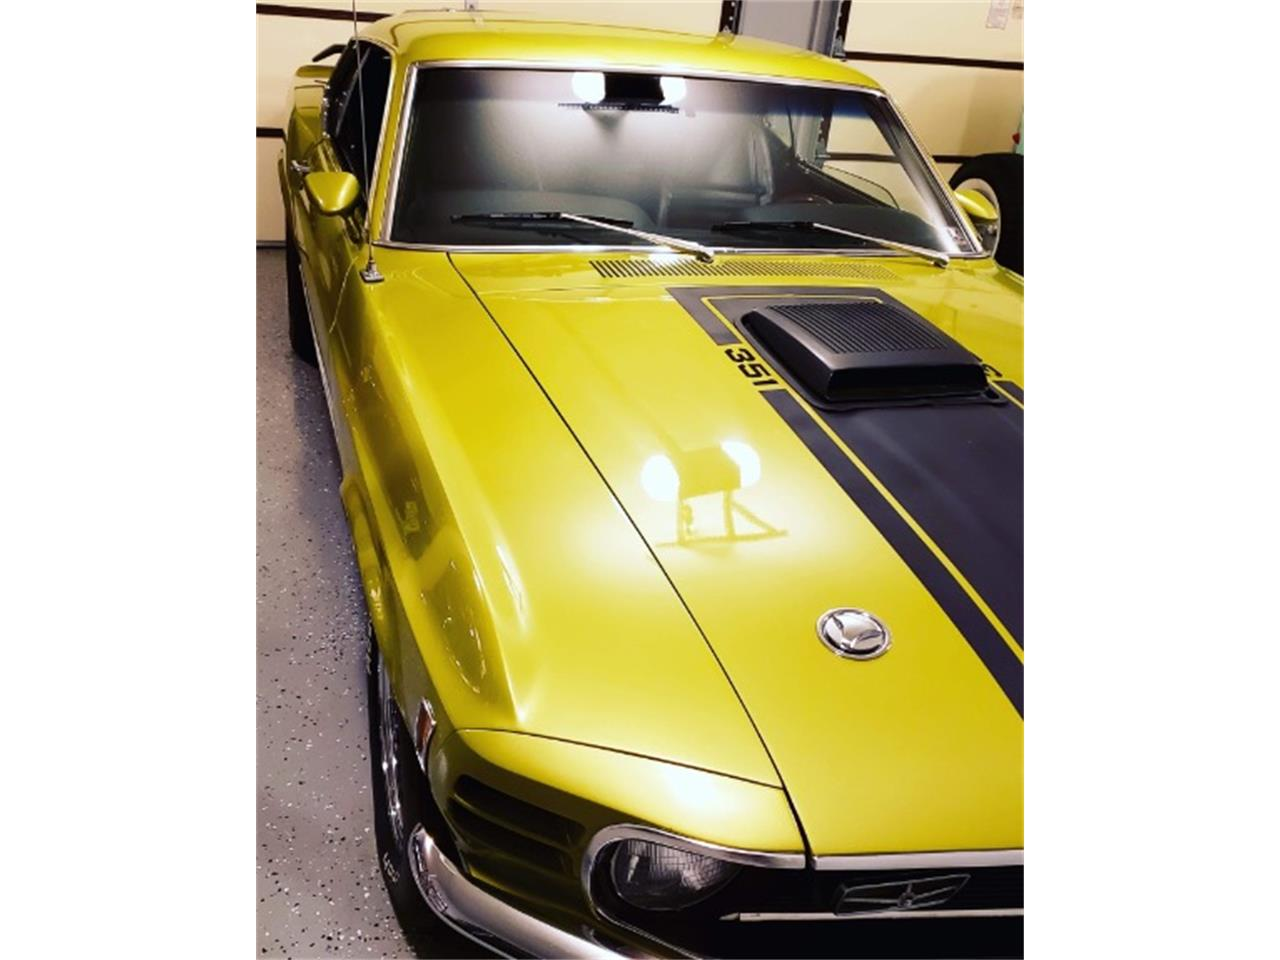 Large Picture of Classic 1970 Mustang located in Illinois - $46,500.00 Offered by North Shore Classics - QIDR